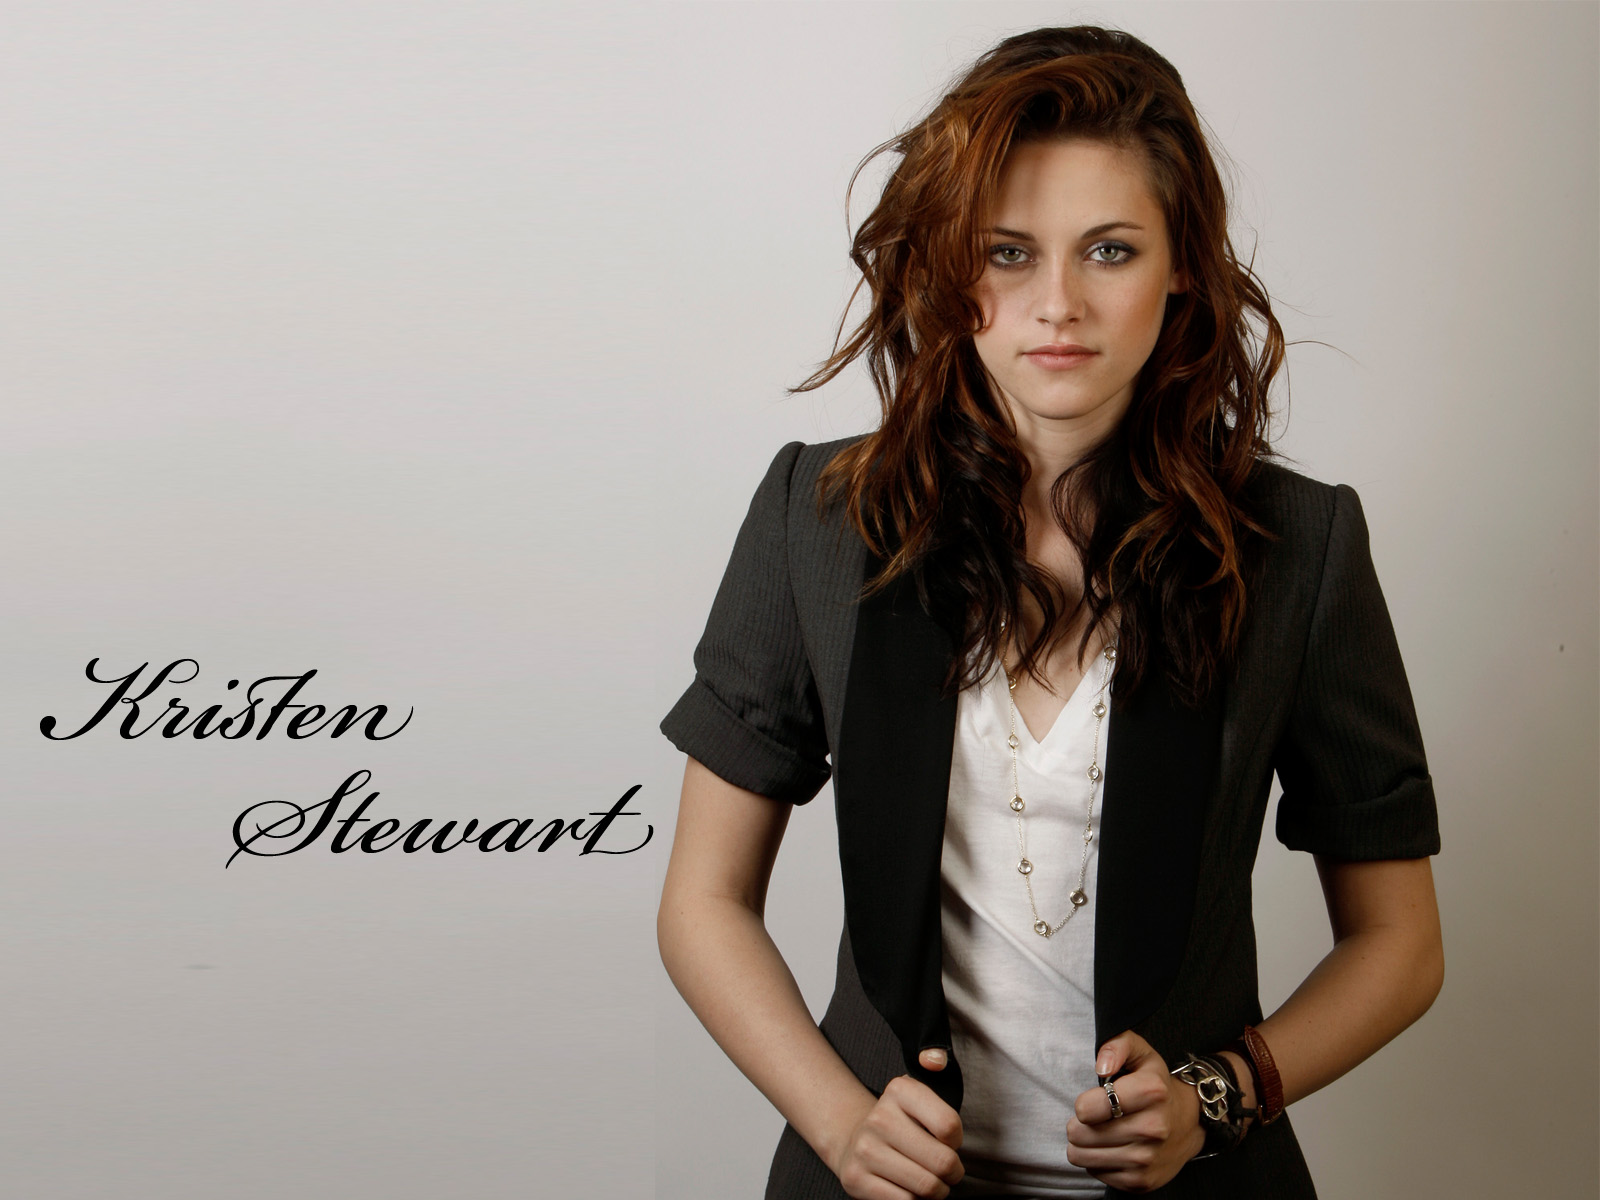 Kristen Stewart Wallpapers HD - WallpaperSafari